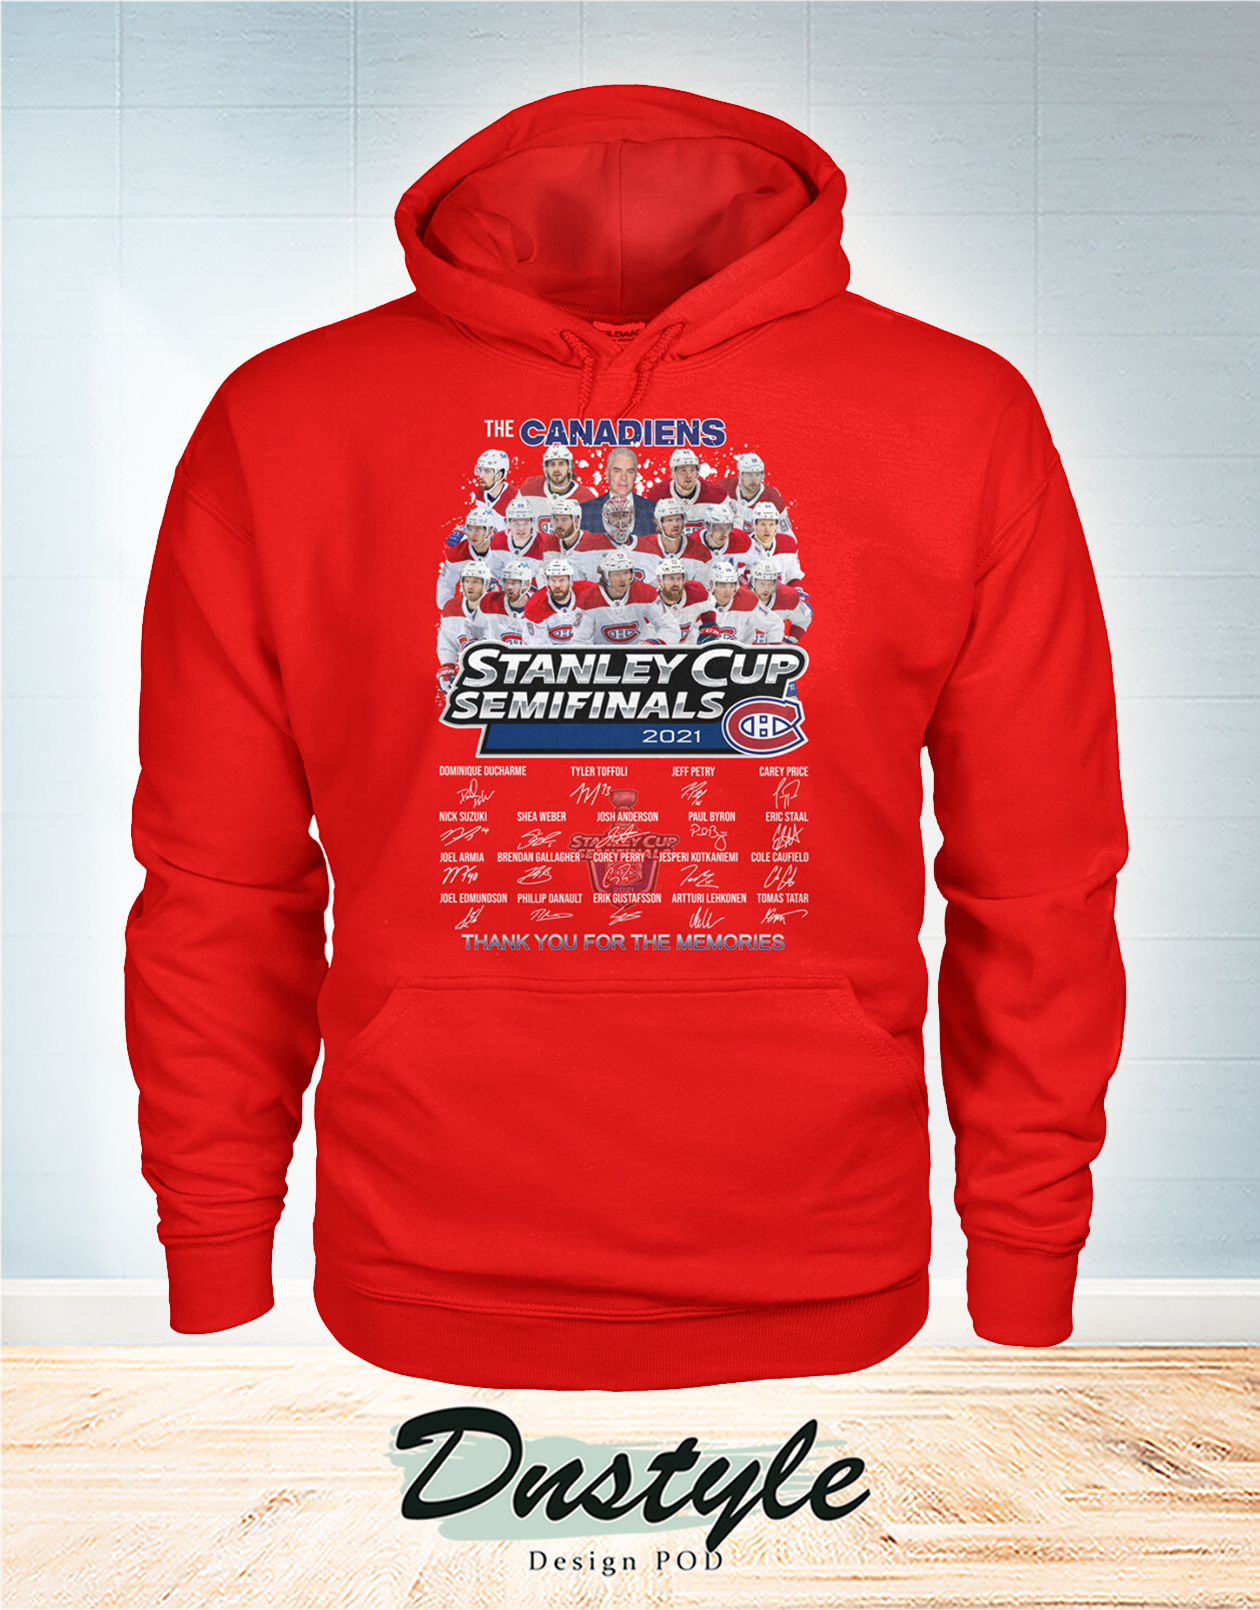 The canadiens stanley cup semifinals 2021 signature hoodie